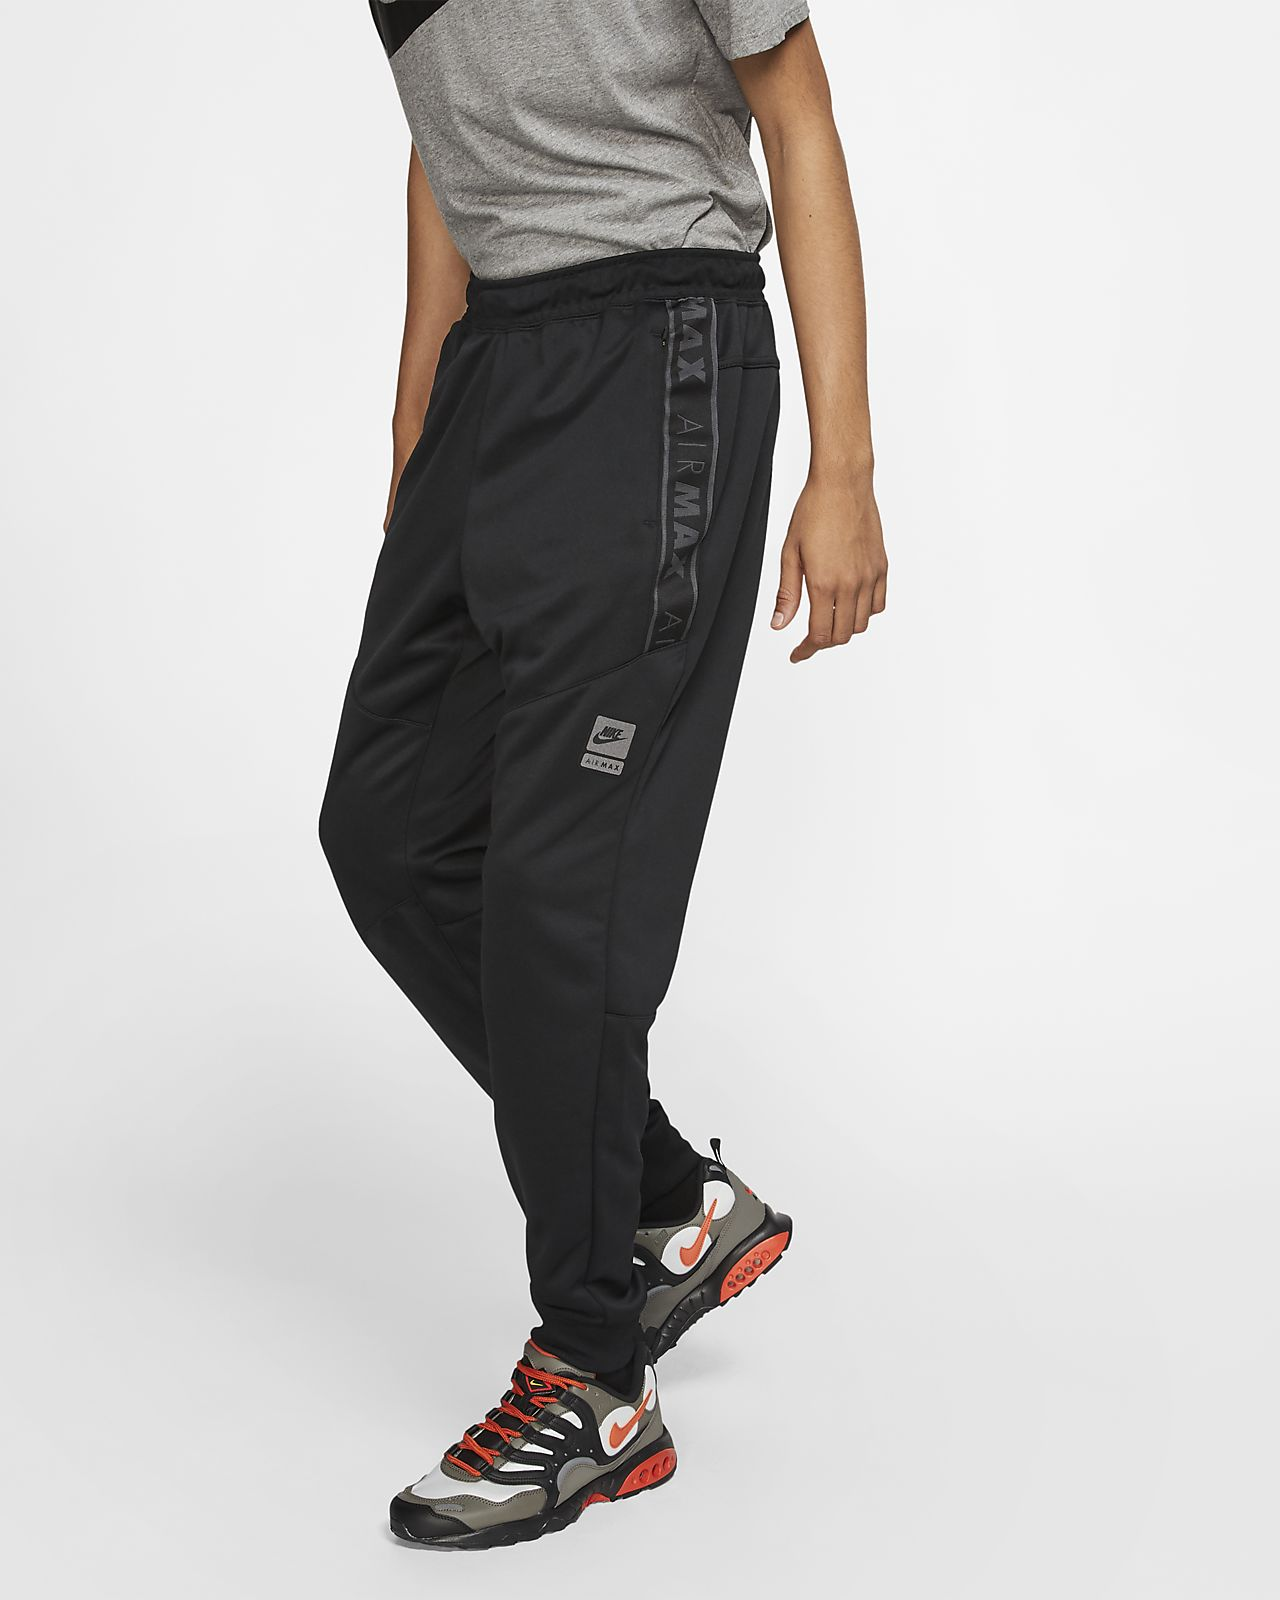 Nike Sportswear Air Max Men's Joggers